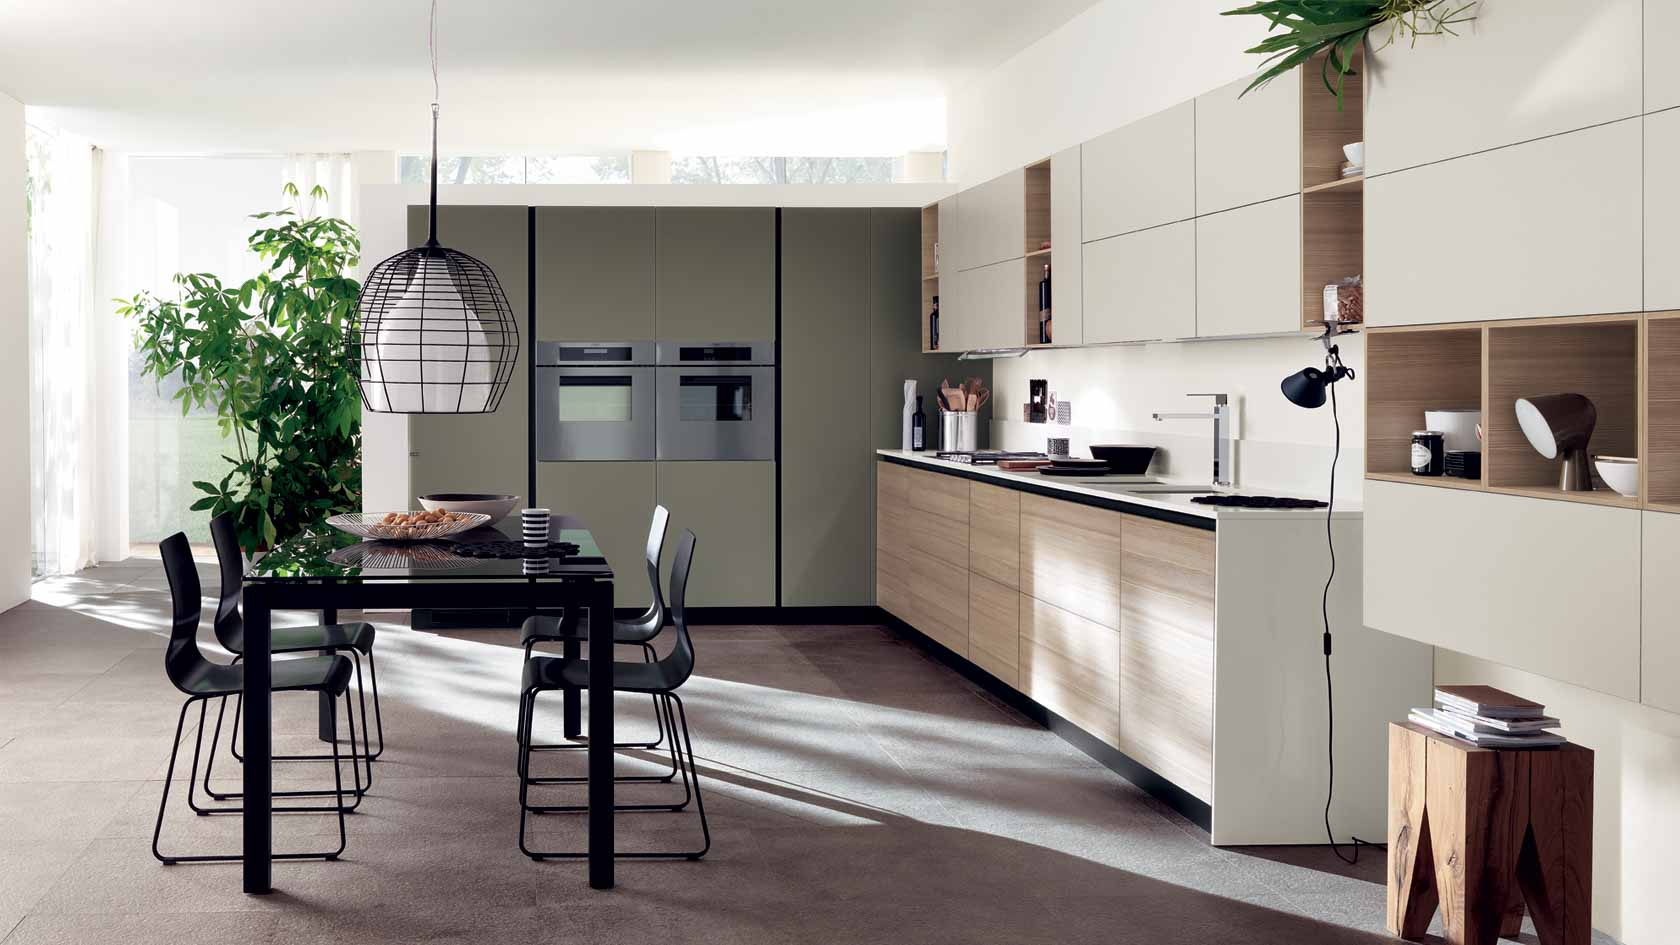 Beautiful Qualità Doimo Cucine Images - Design & Ideas 2018 ...